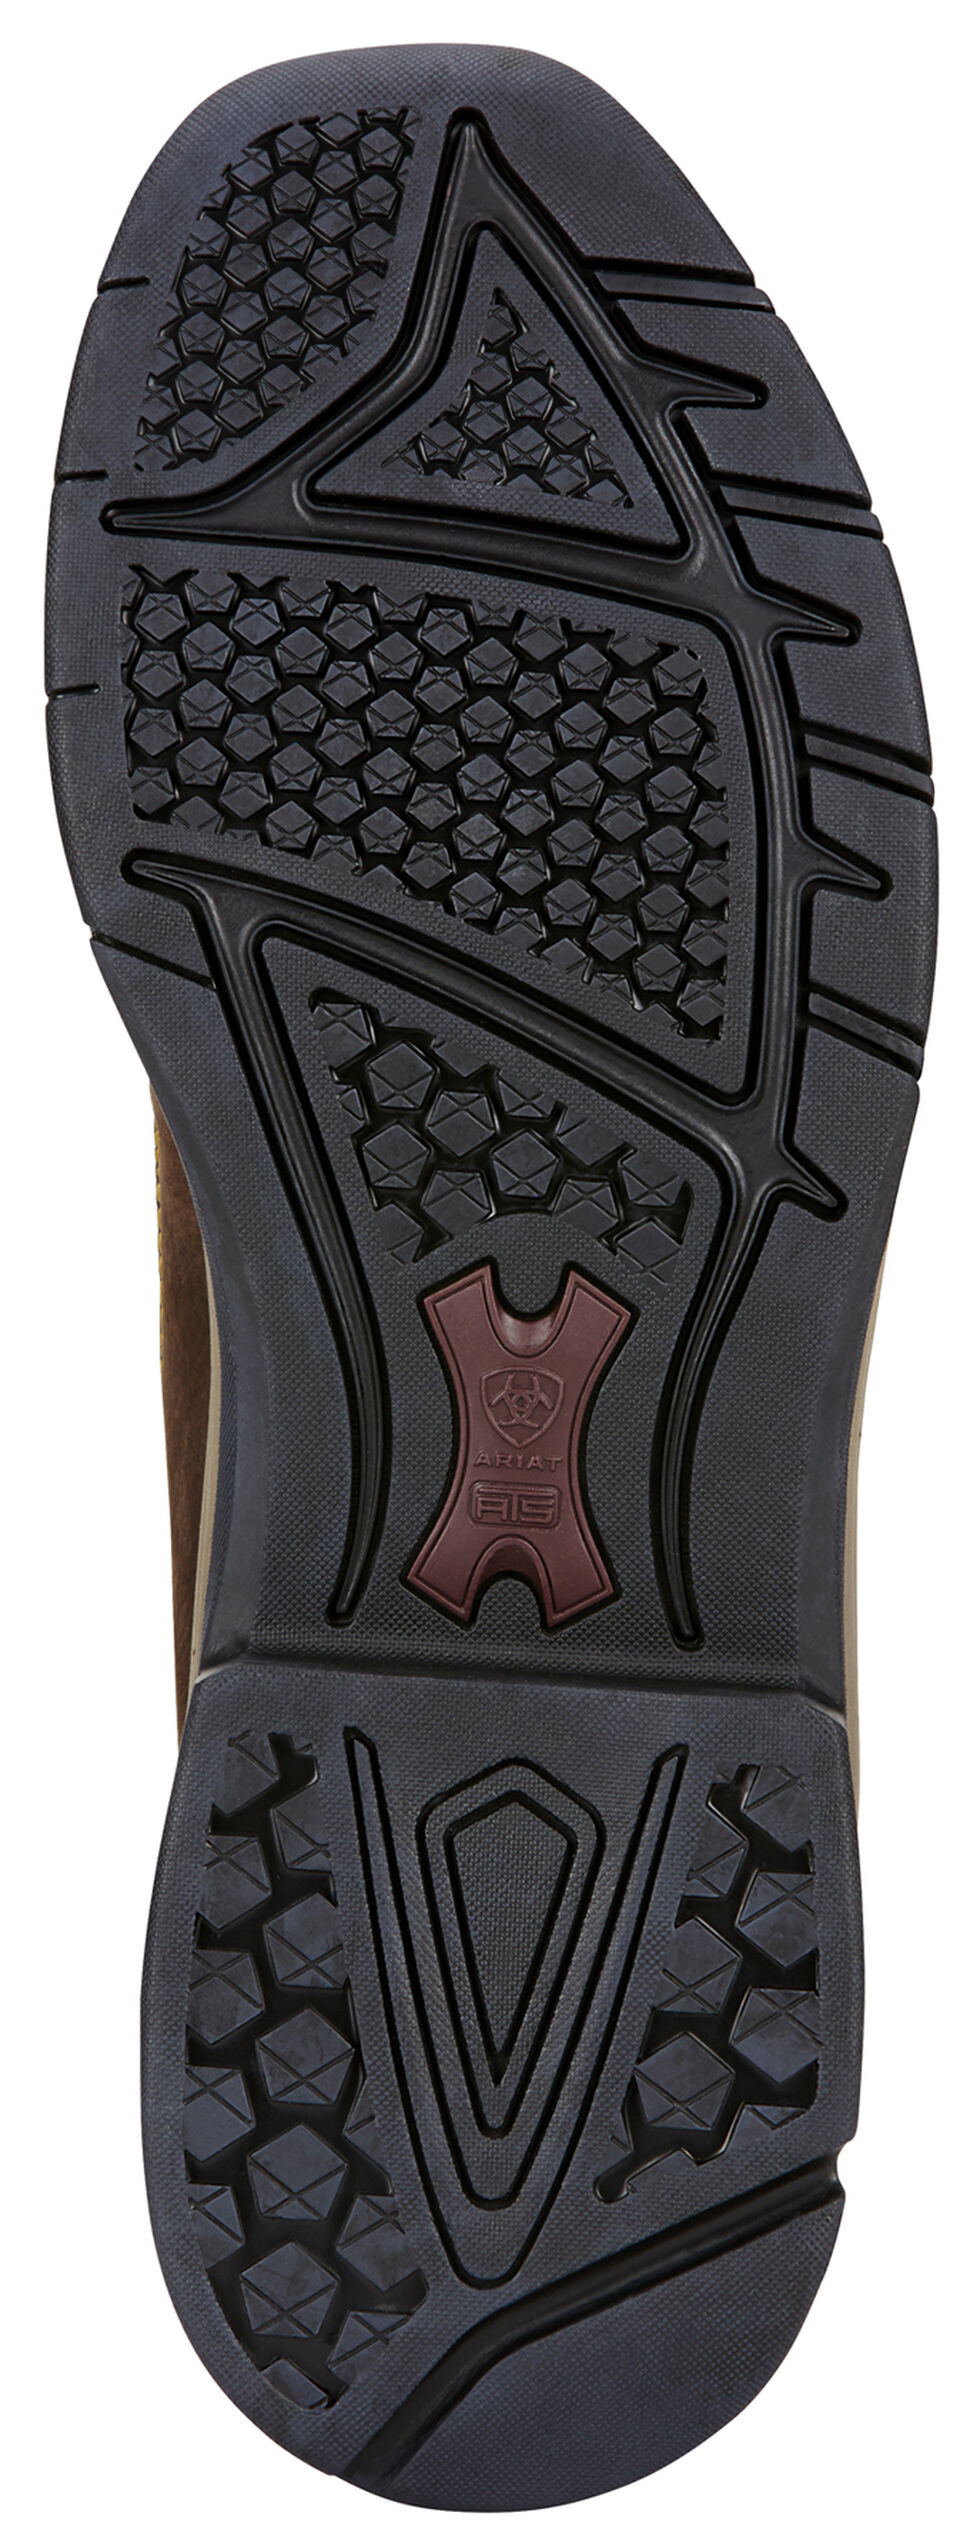 Ariat Men's Java Terrain Pro H20 Boots - Round Toe, Coffee, hi-res